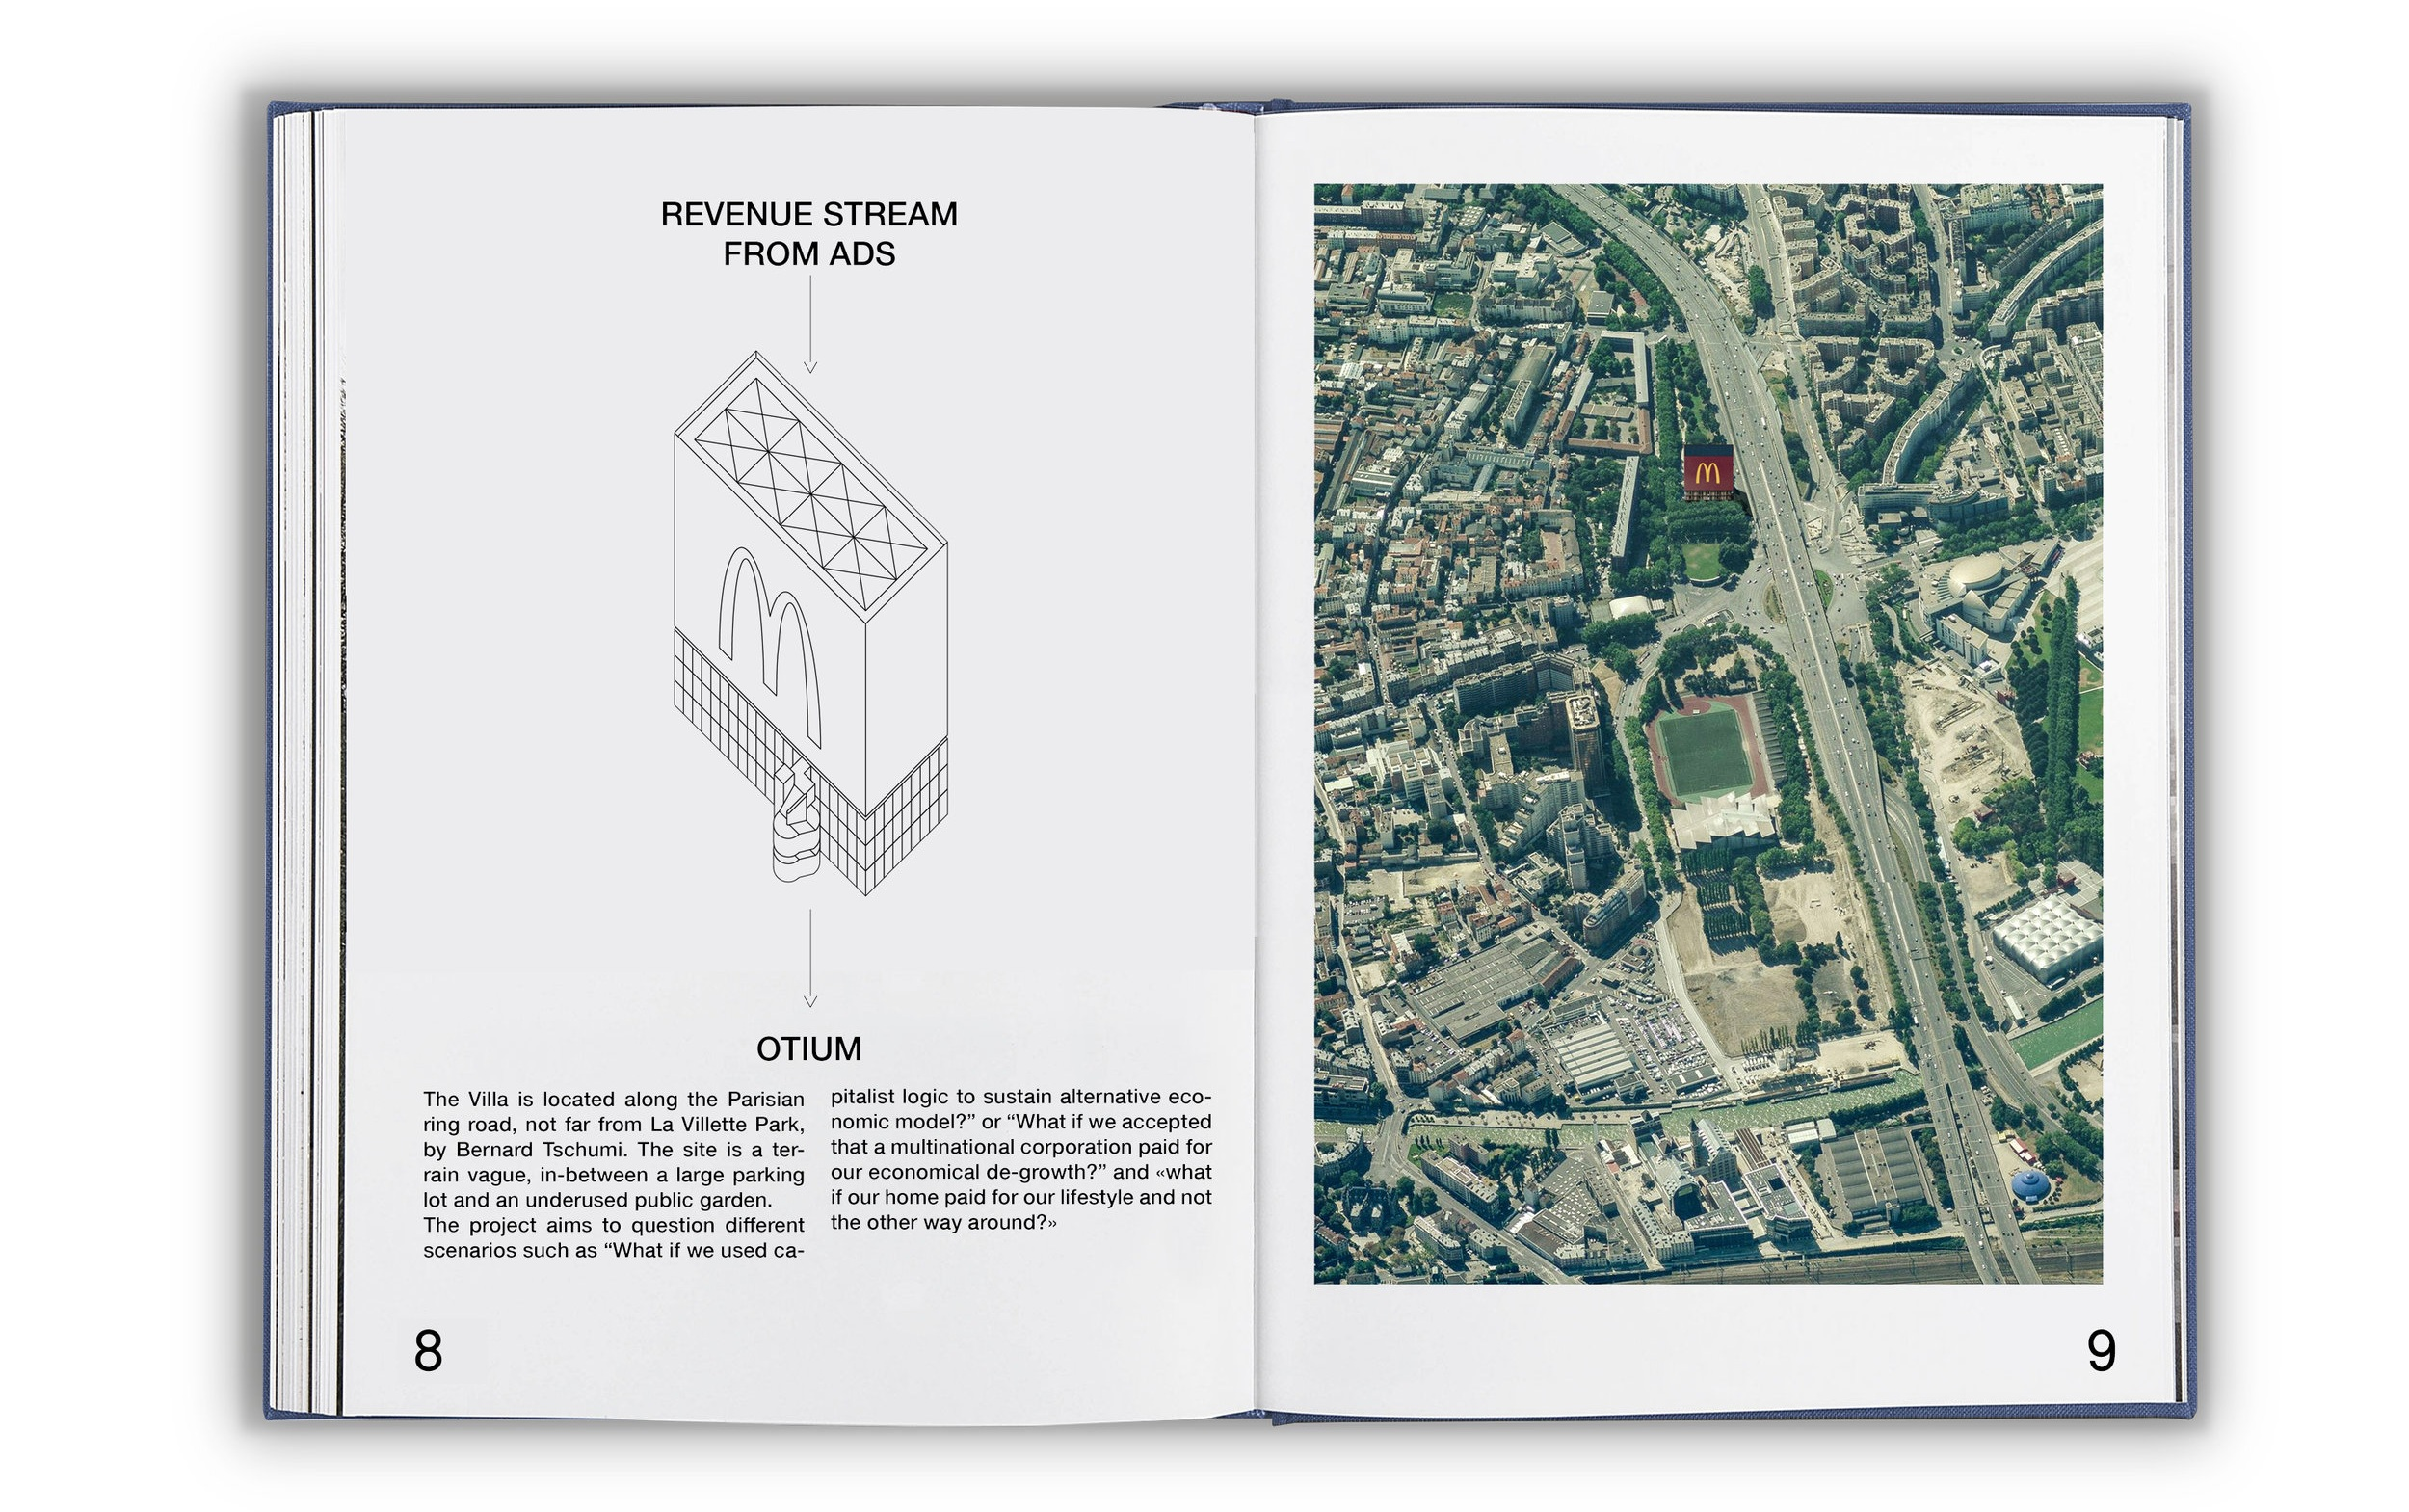 """The Villa is located along the Parisian ring road, not far from La Villette Park, by Bernard Tschumi. The site is a  terrain vague , in-between a large parking lot and an underused public garden. The project aims to question different scenarios such as """"What if we used capitalist logic to sustain an alternative economic model?"""" or """"What if we accepted that a multinational corporation paid for our economic downsizing?"""" or """"what if our home paid for our lifestyle and not the other way around?"""""""